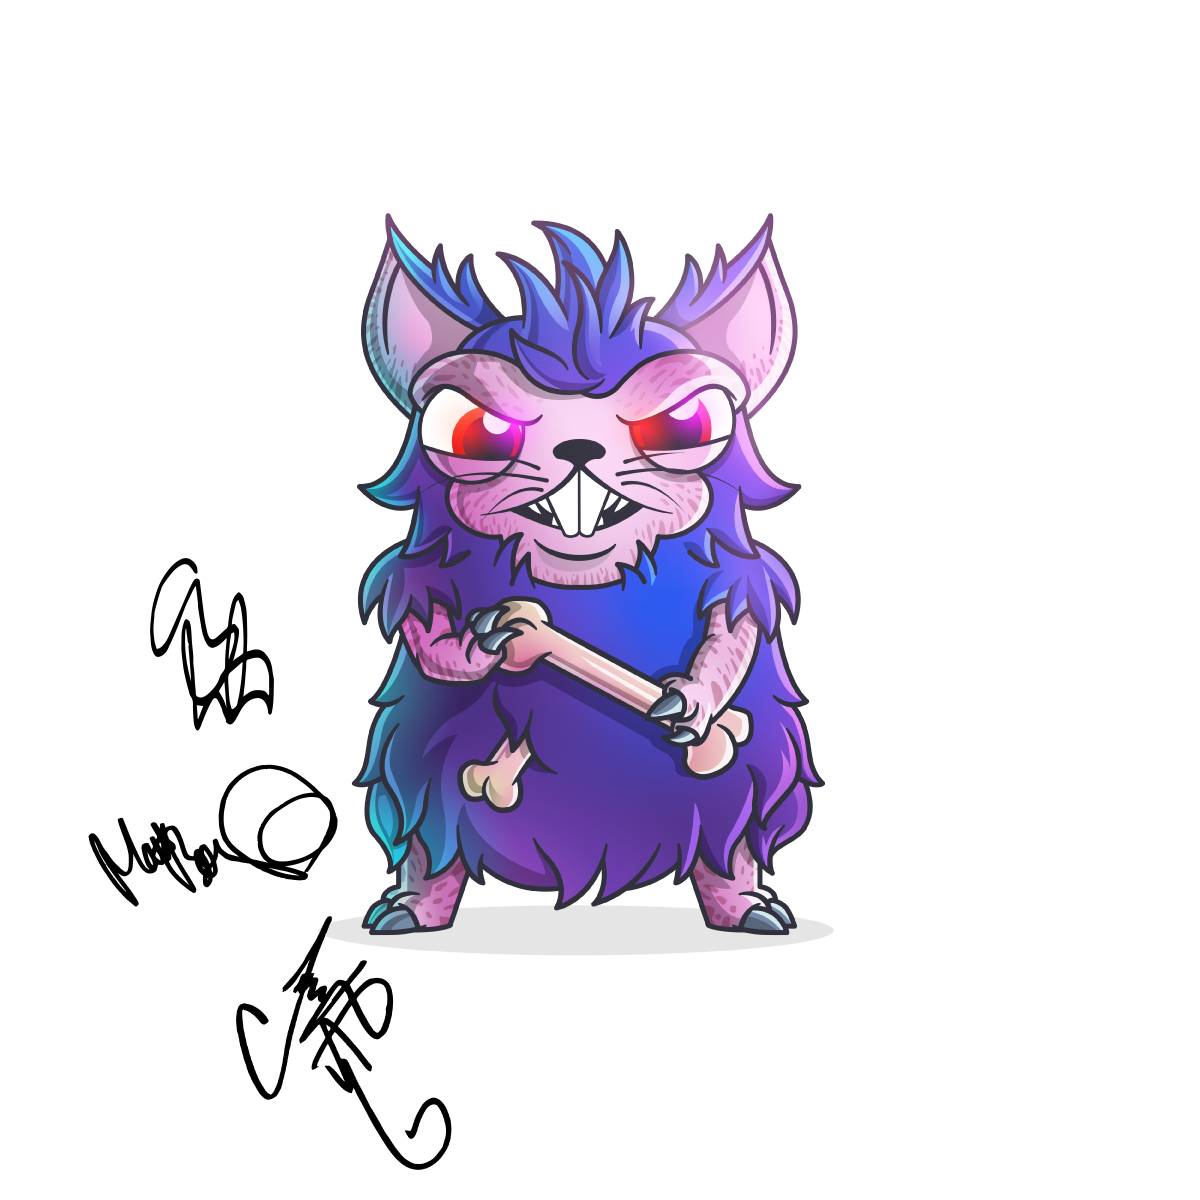 cryptokitty #1967692